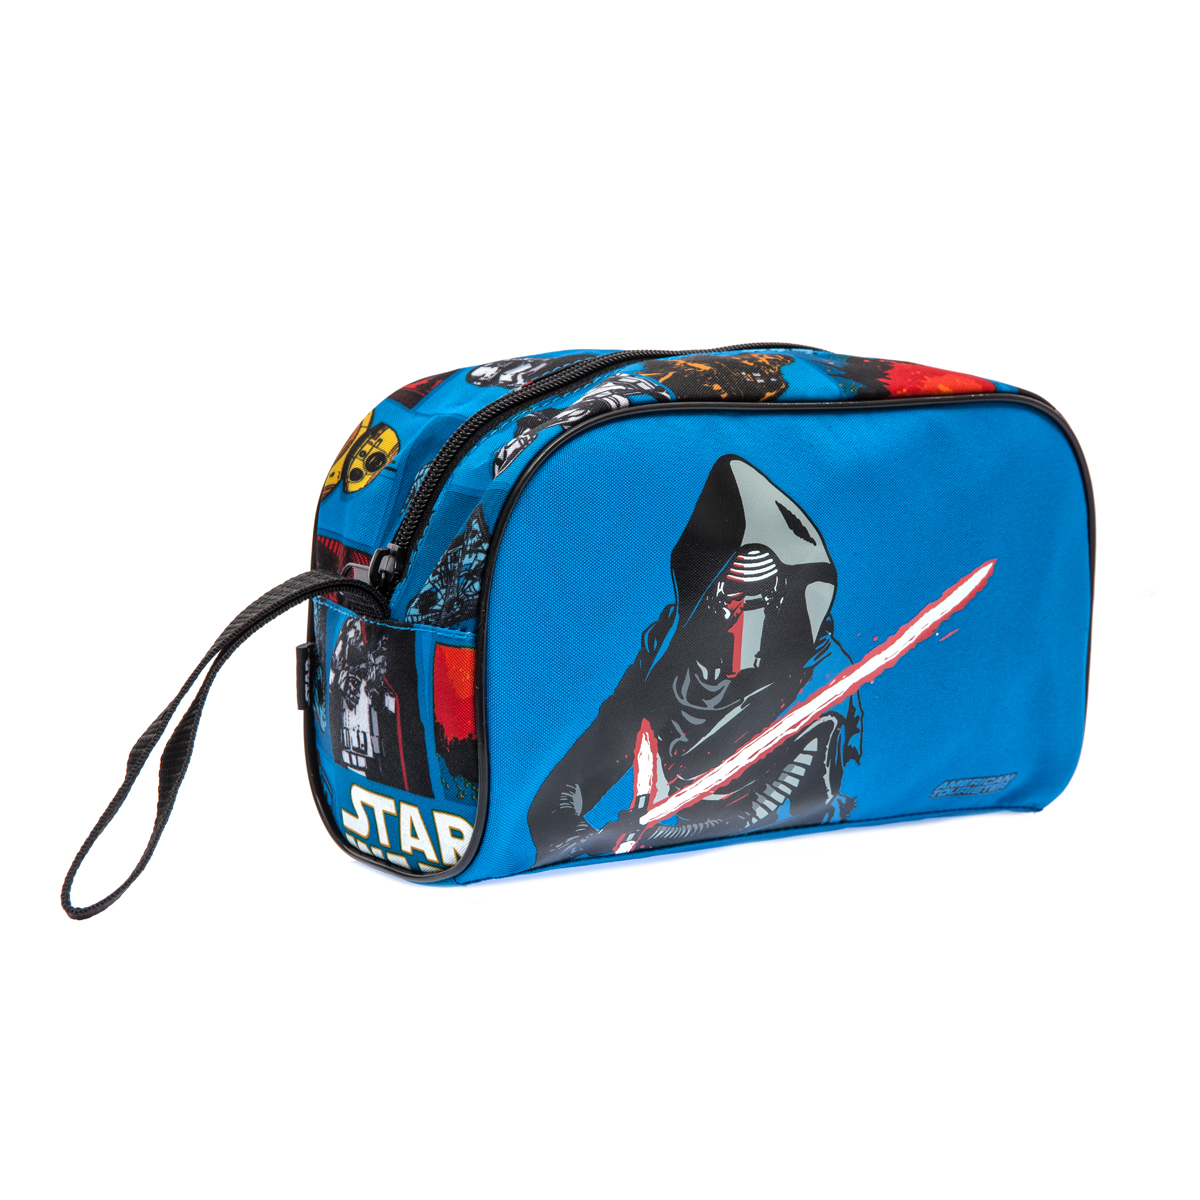 AMERICAN TOURISTER - Παιδικό νεσεσέρ STAR WARS Disney by AMERICAN TOURISTER μπλε